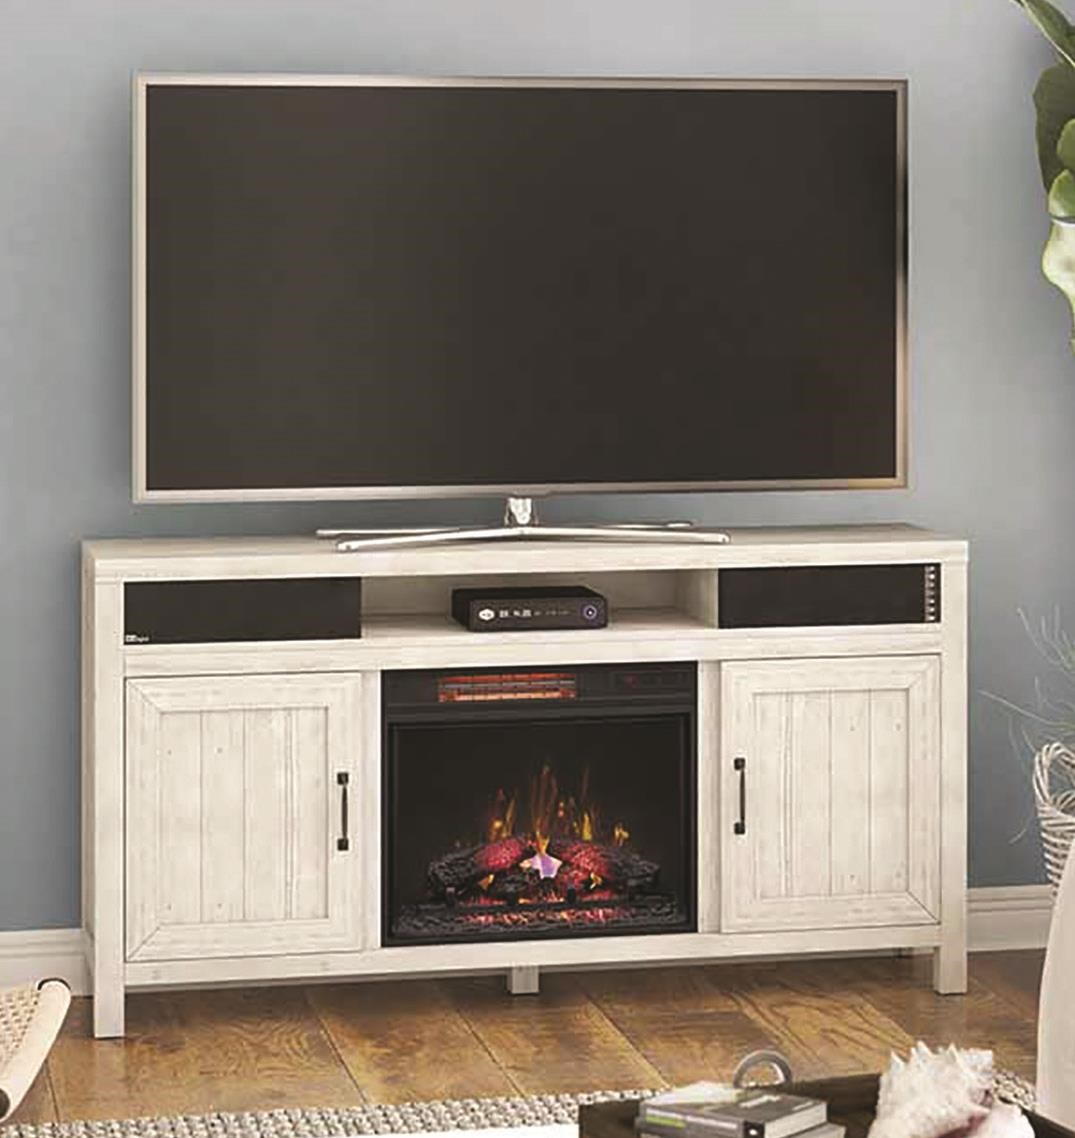 Melissa Media Fireplace W/Speaker Kit by Twin Star Home at Darvin Furniture